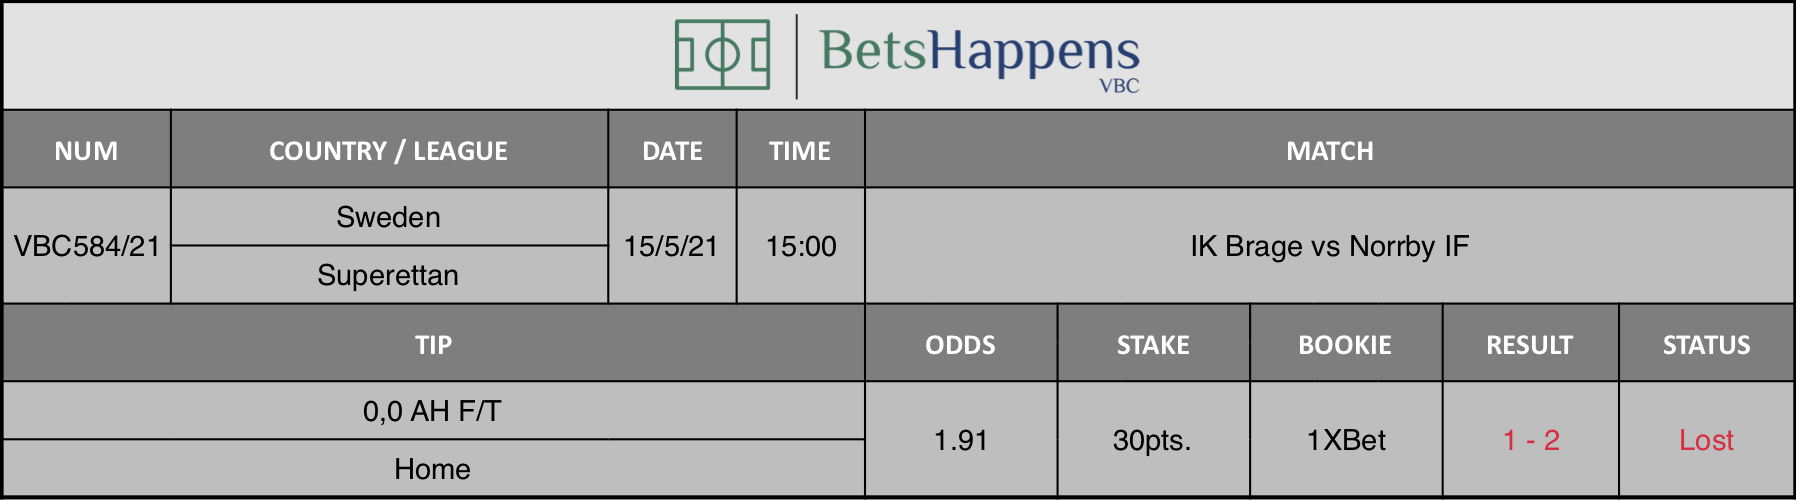 Results of our tip for the IK Brage vs Norrby IF match where 0,0 AH F/T  Home is recommended.